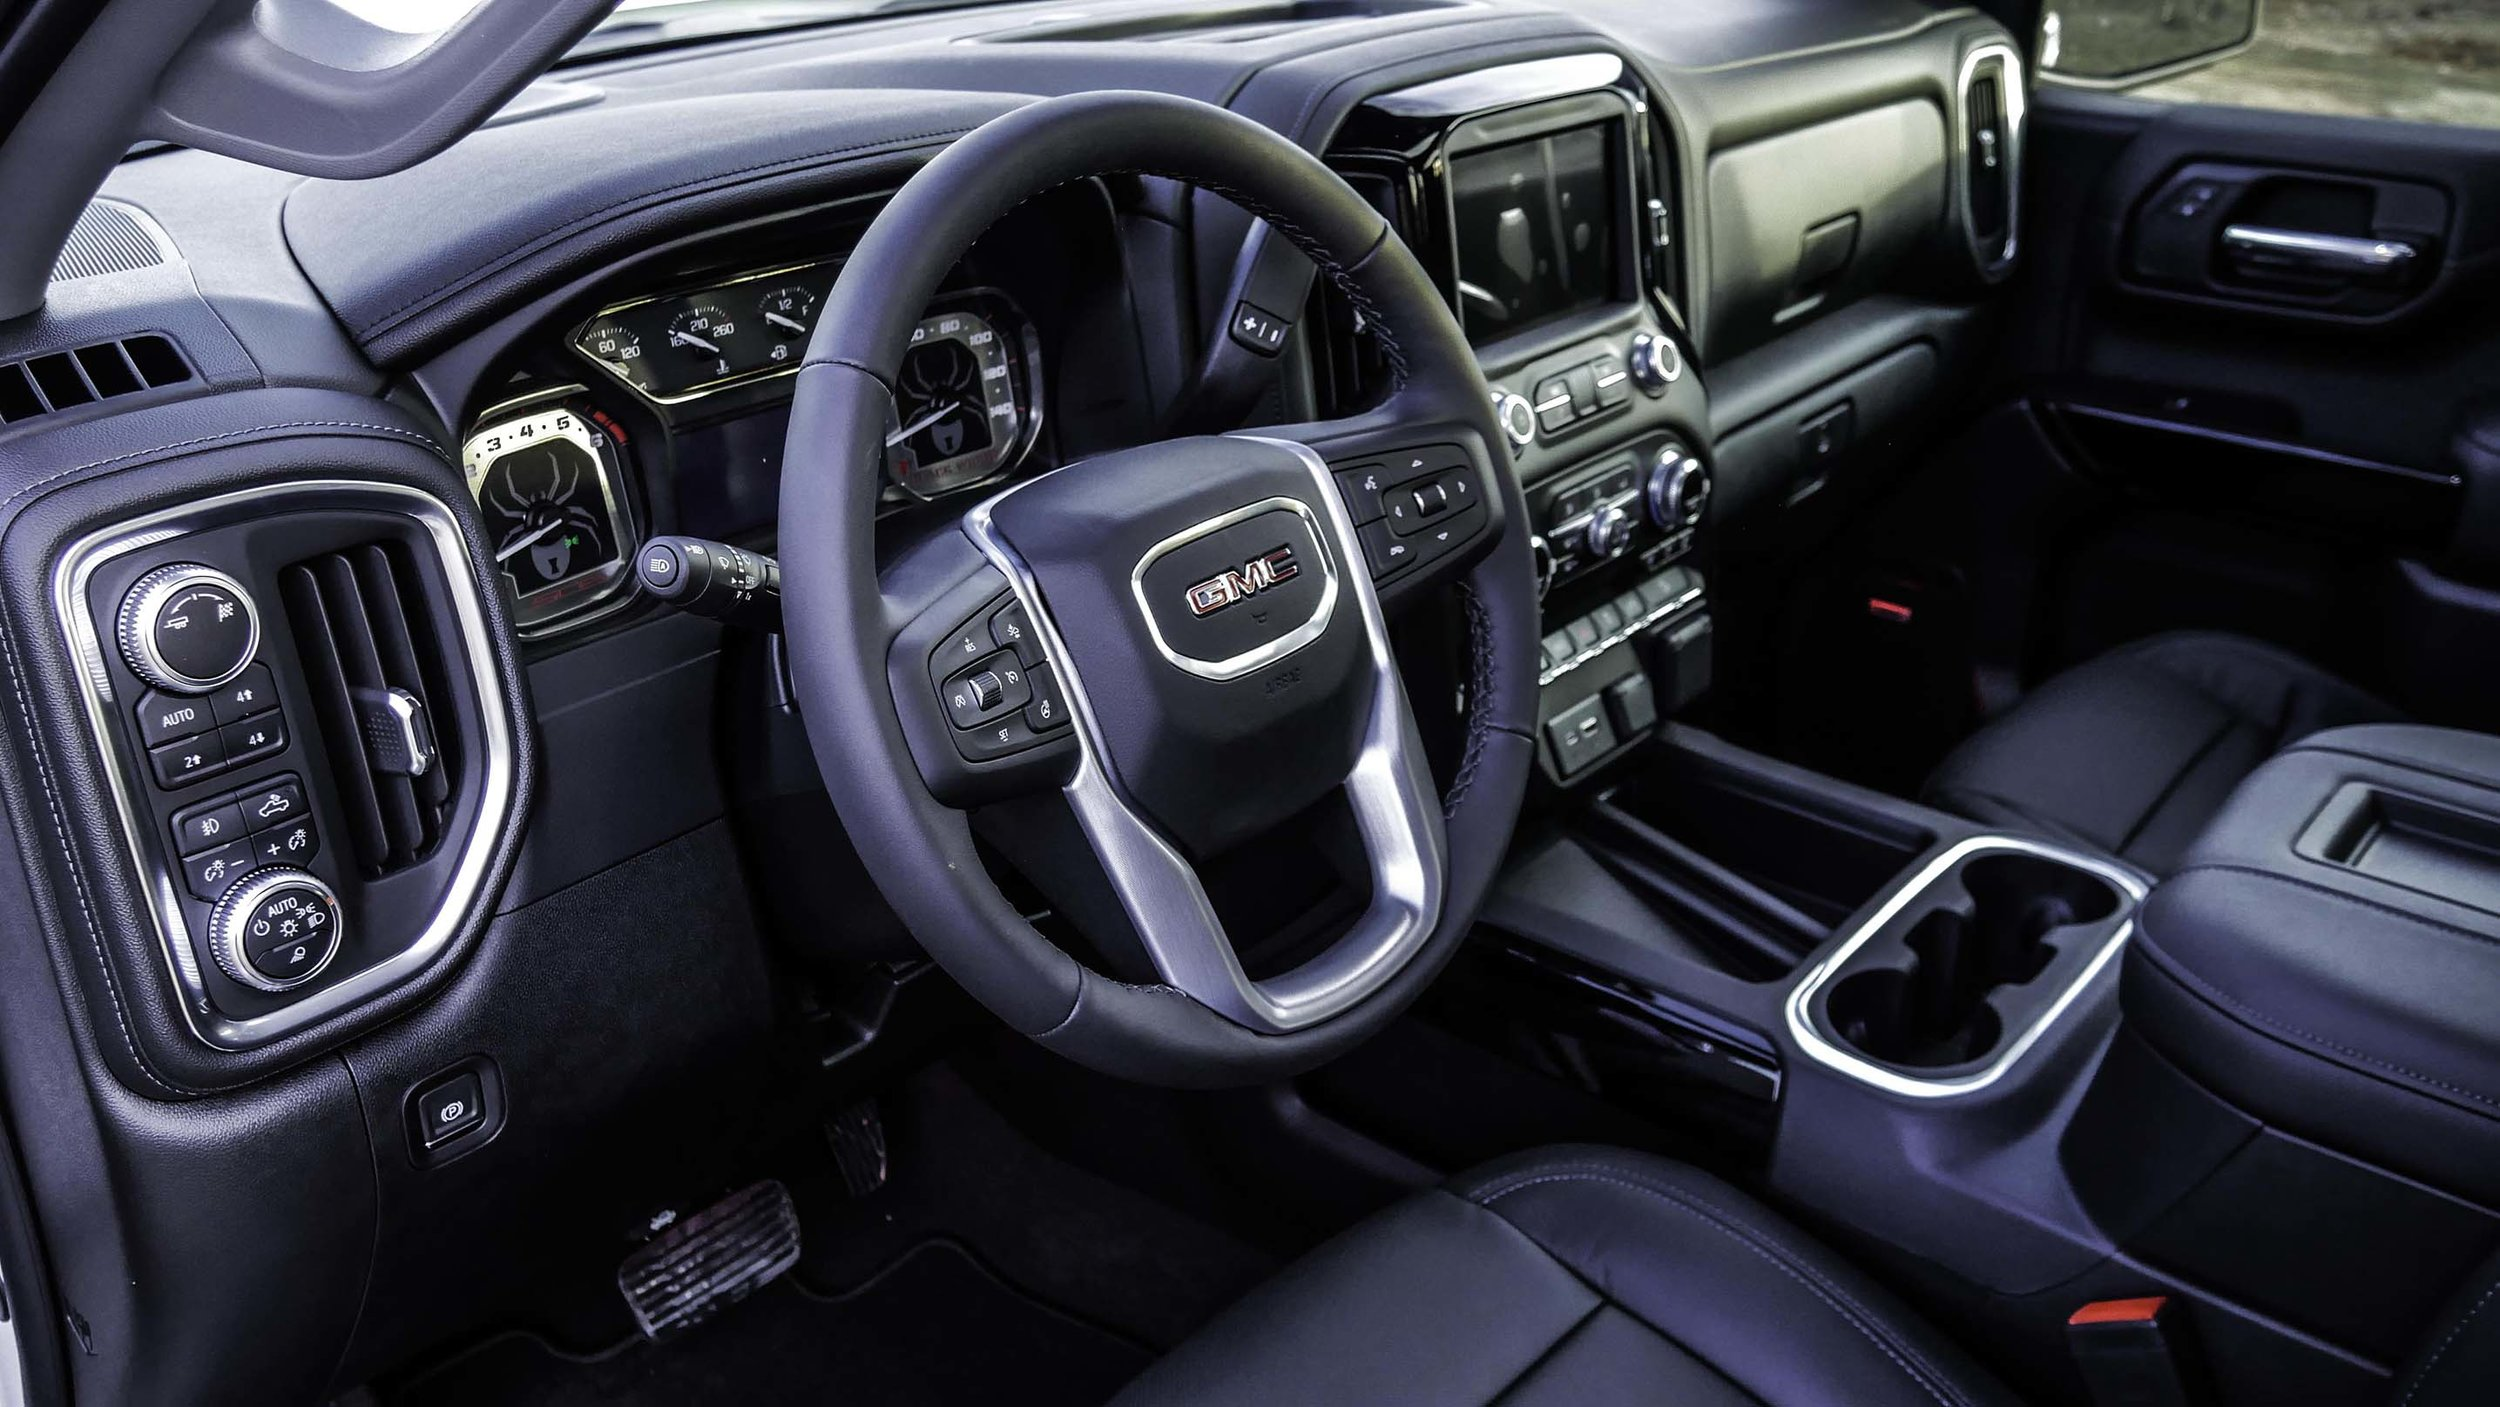 2019 GMC Sierra Black Widow Interior Small.jpg